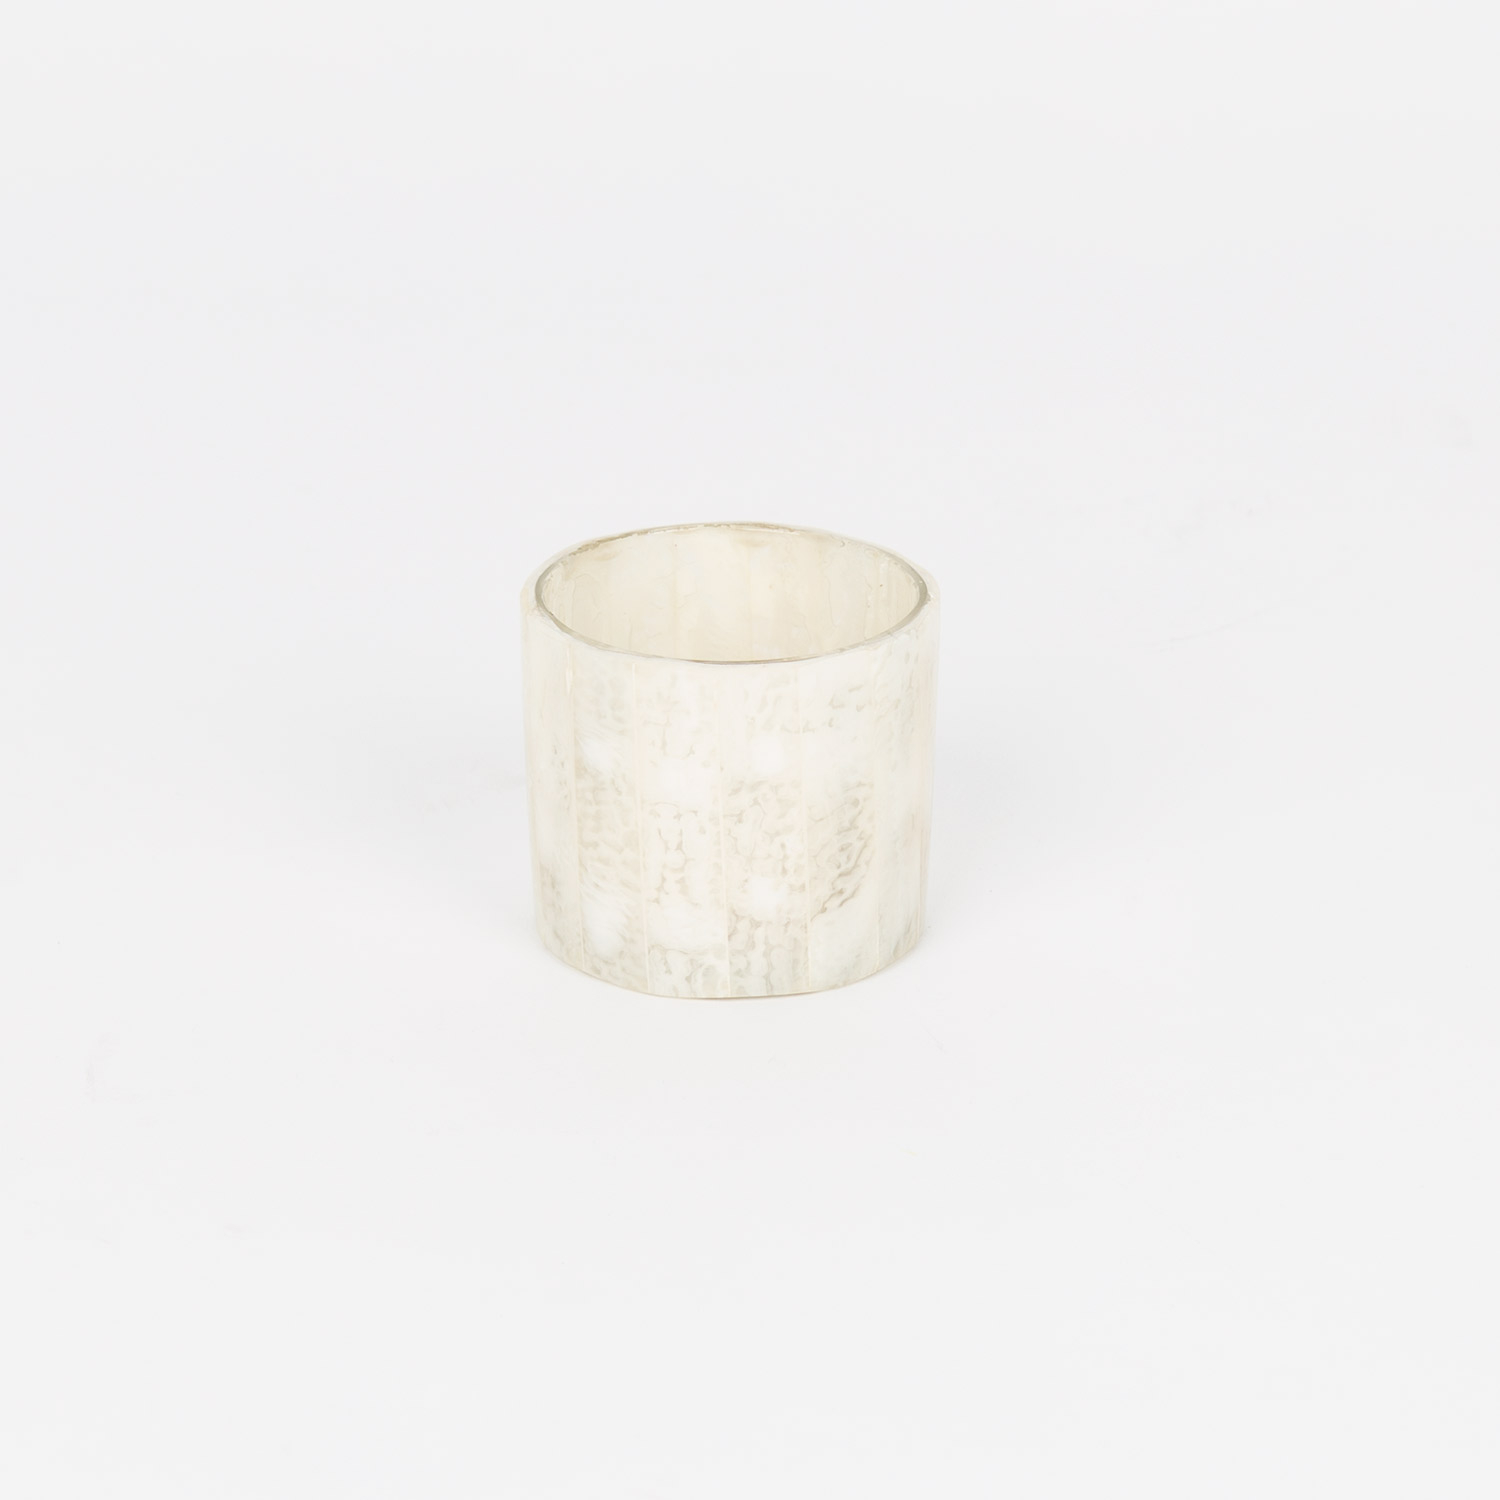 CONICAL NACRE CANDLE HOLDER